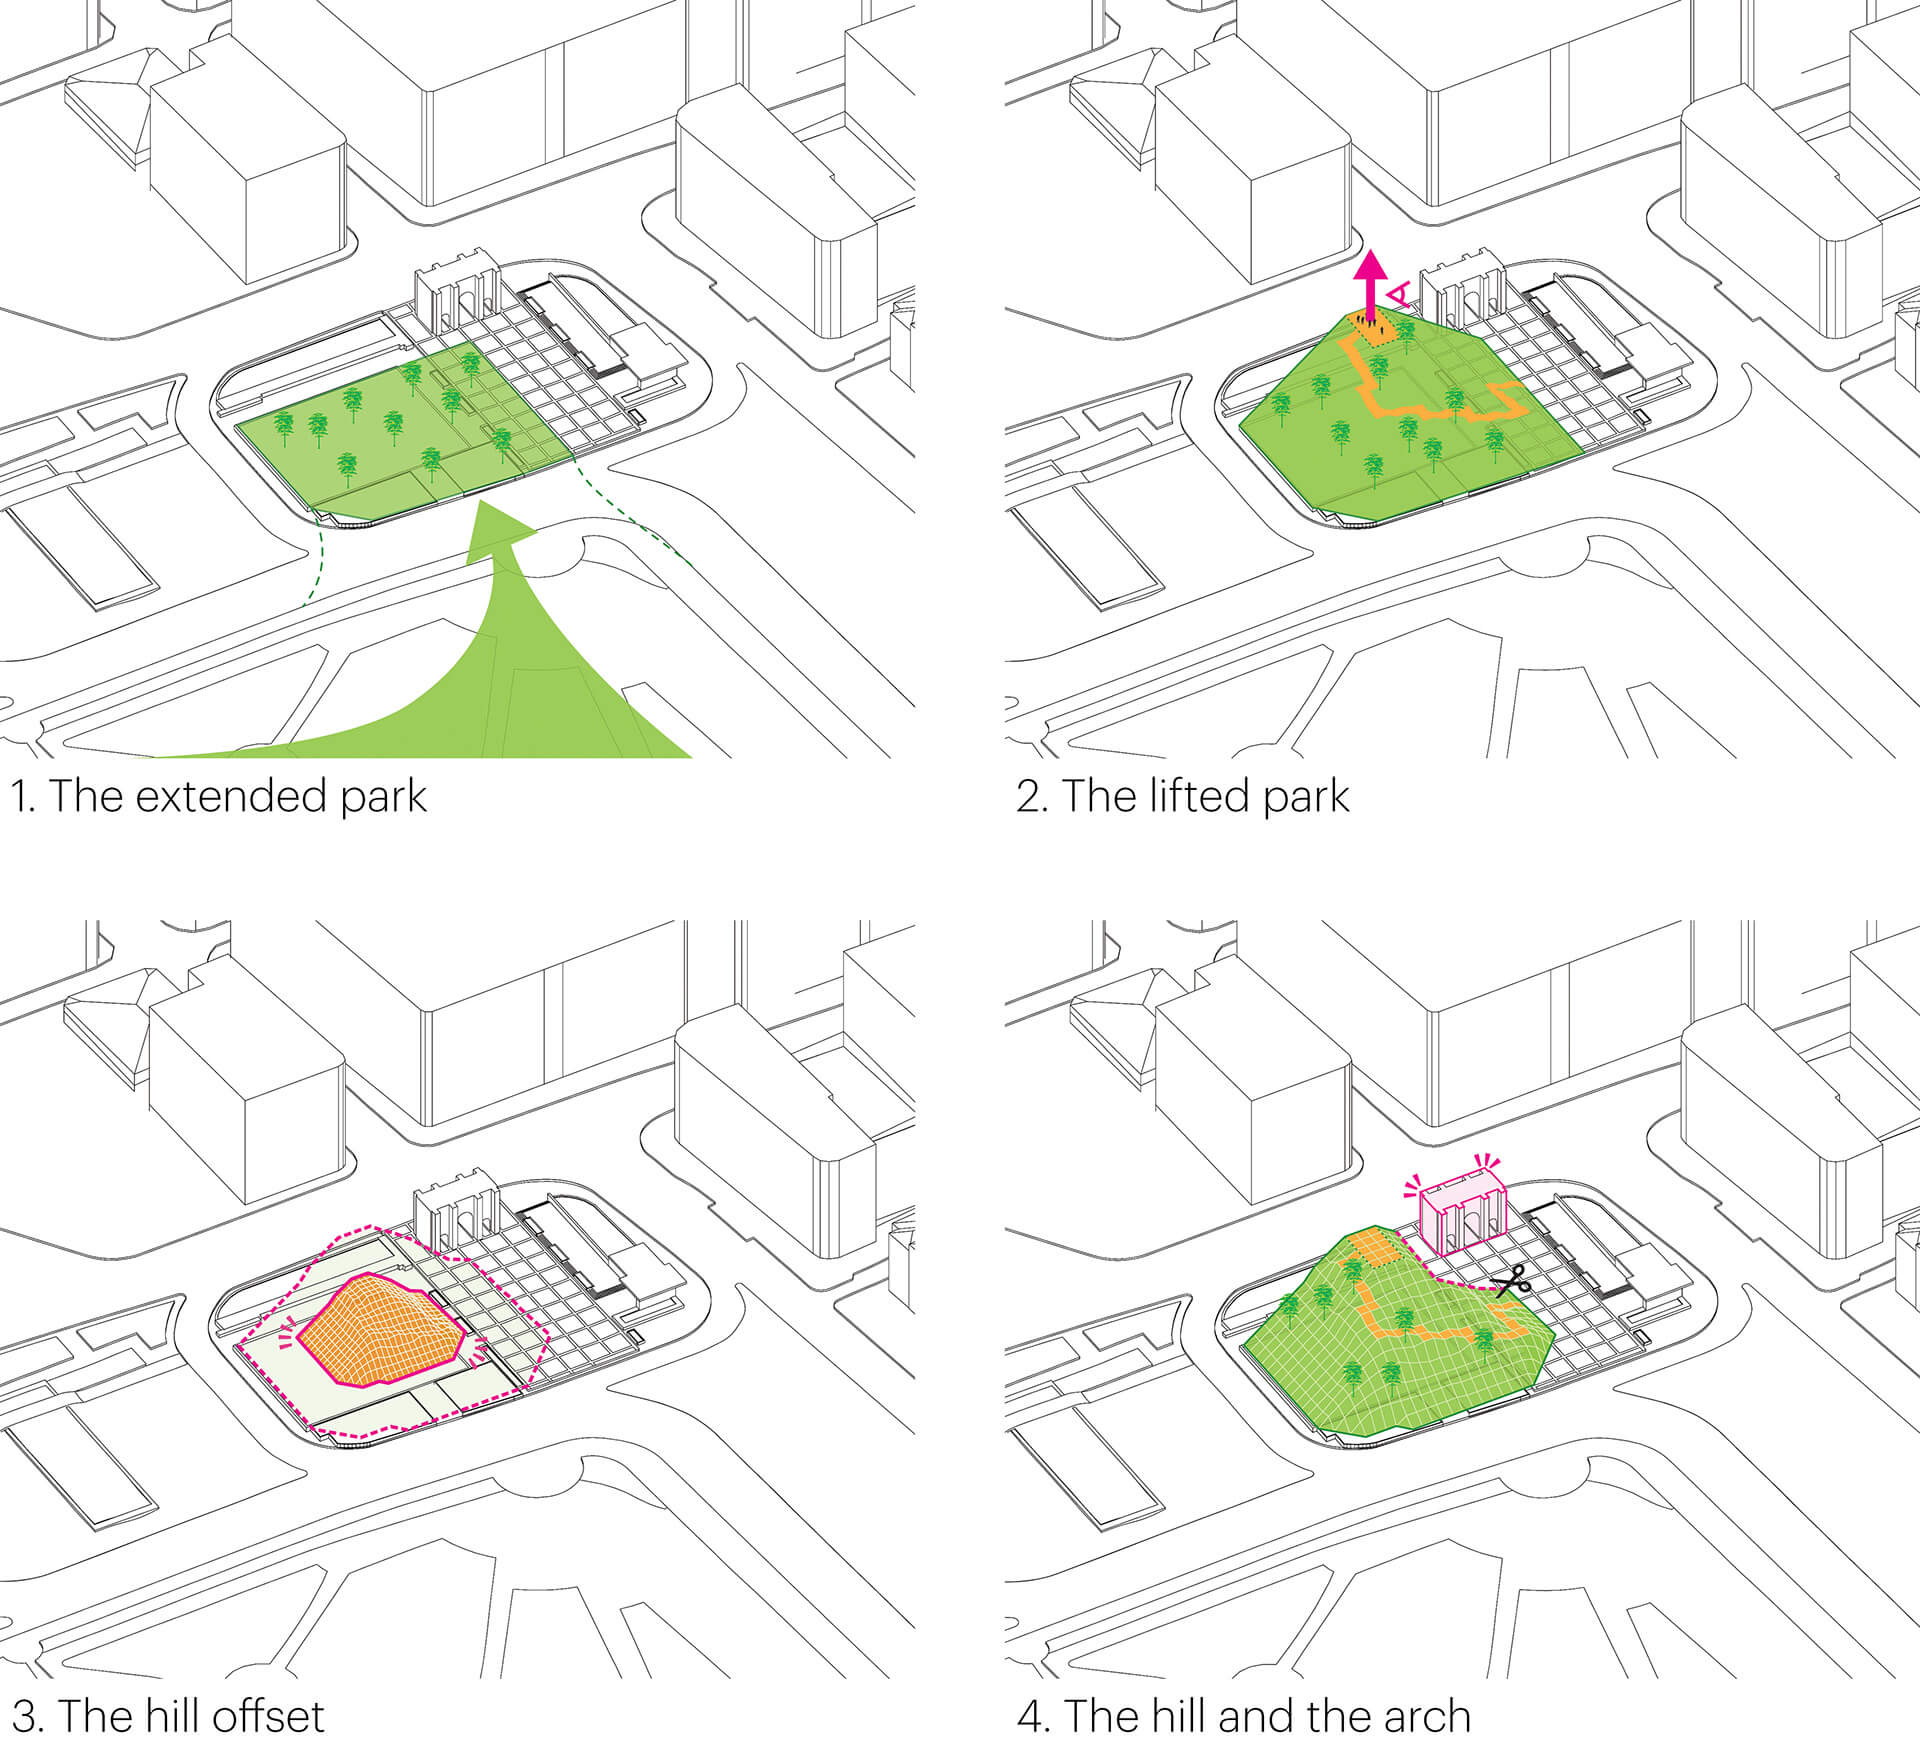 Plan for Marble Arch Hill depicted in steps | Marble Arch Hill designed by MVRDV| STIRworld